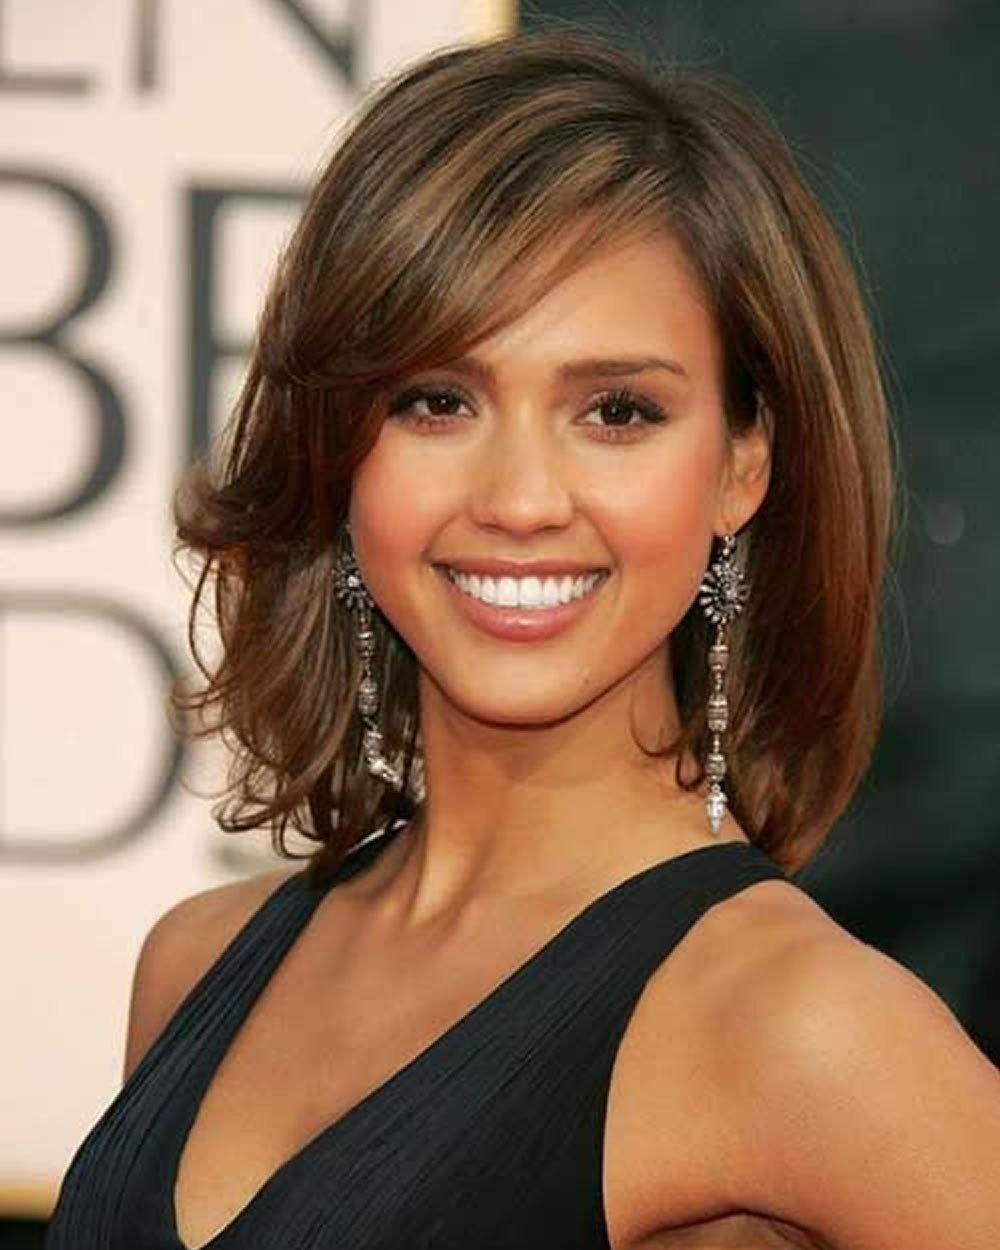 New 30 Best Short Bob Haircuts With Bangs And Layered Bob Ideas With Pictures